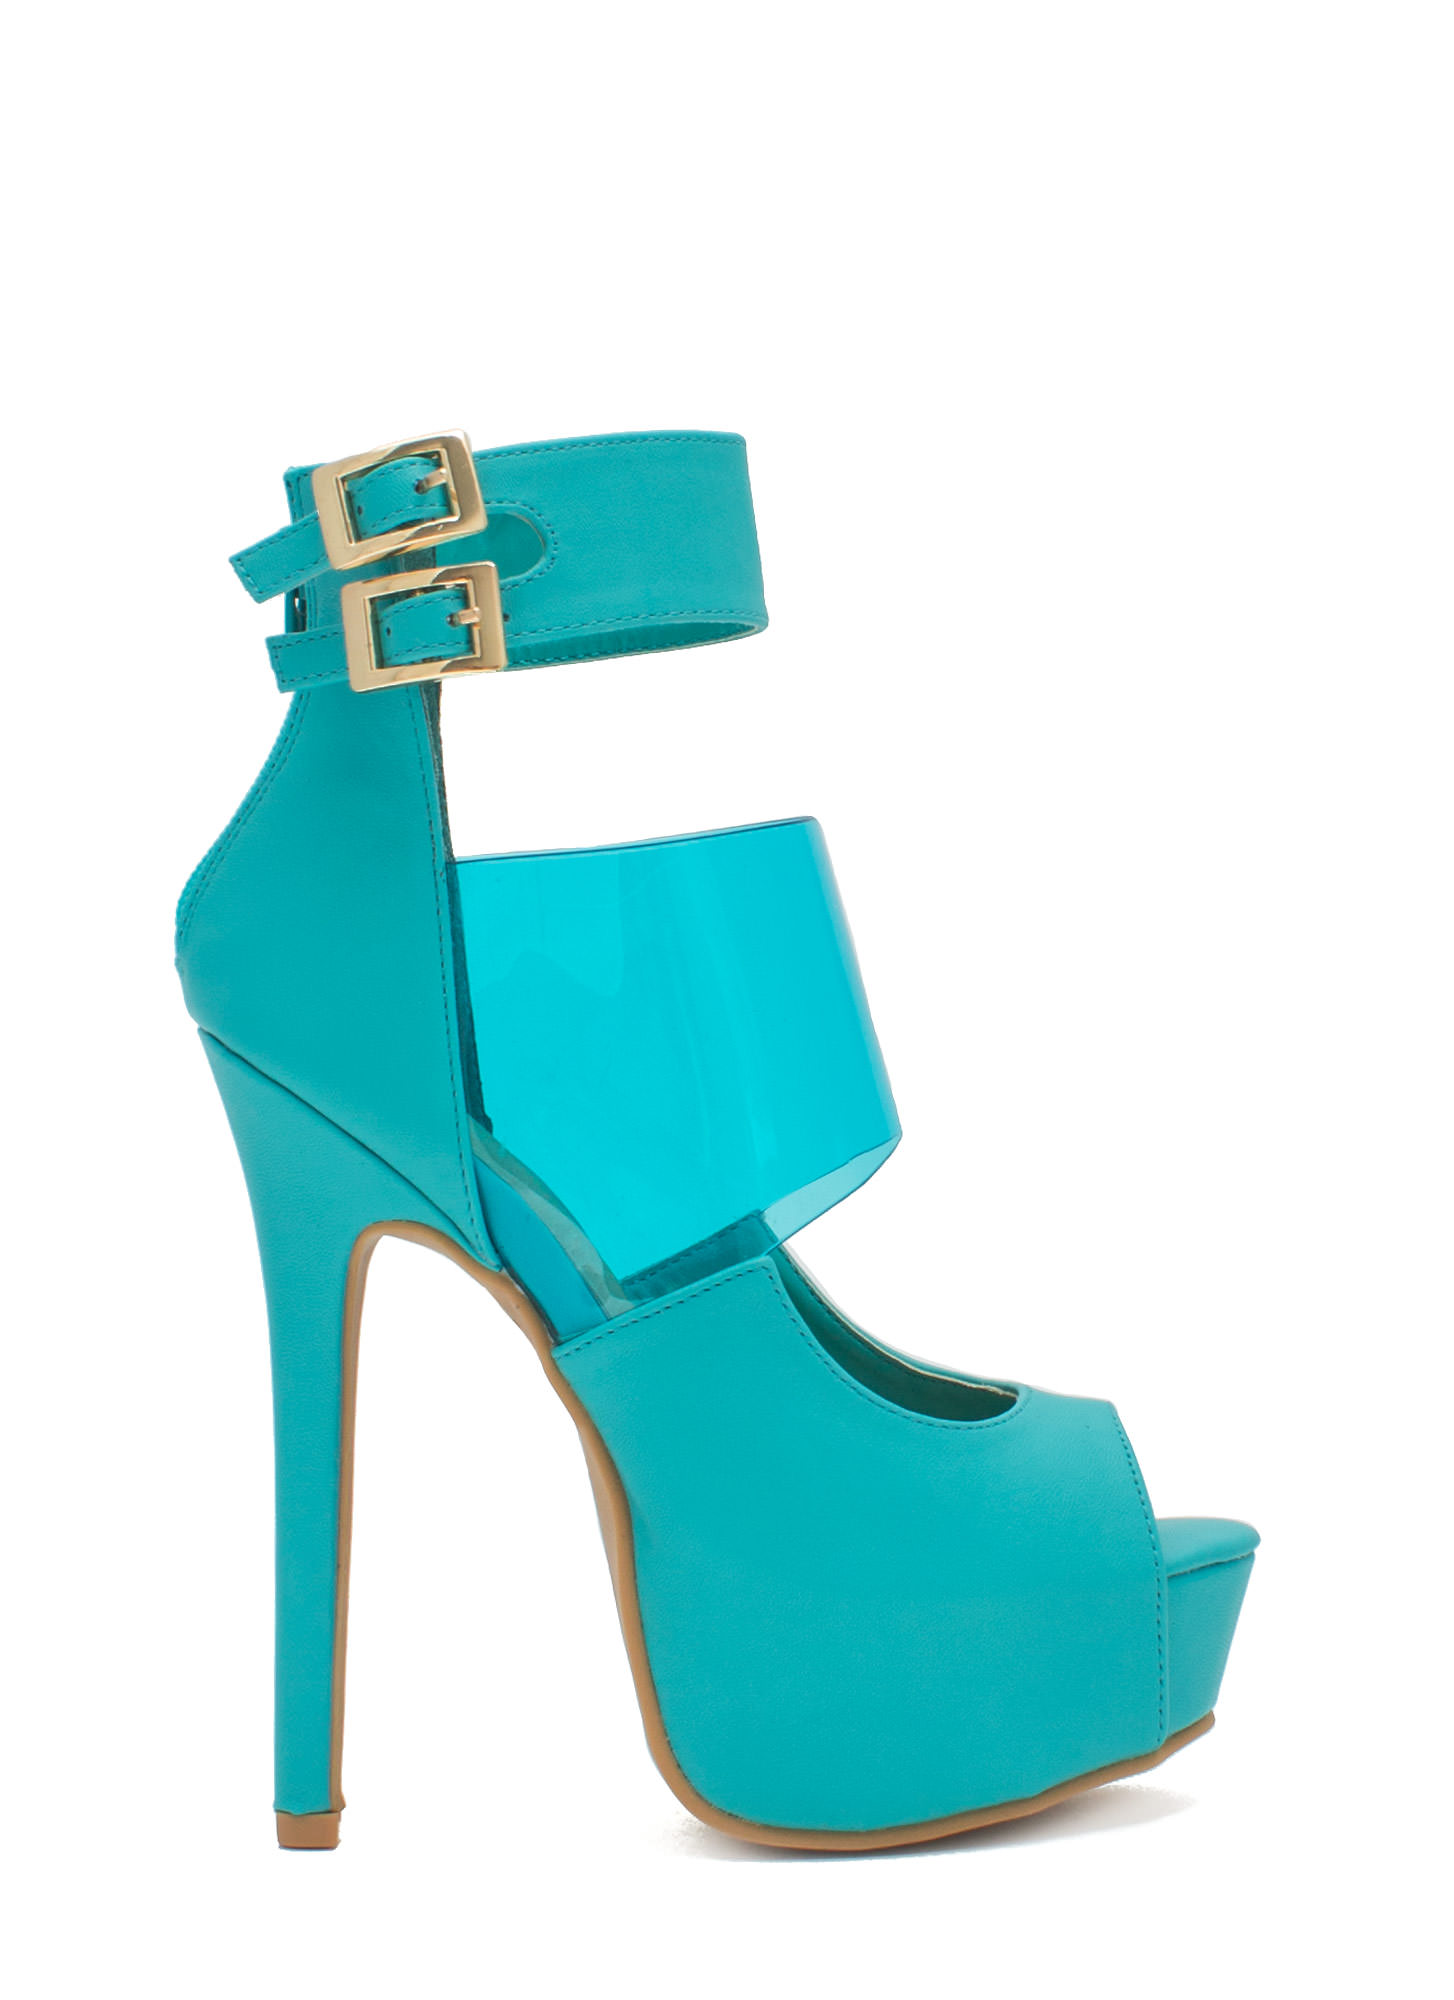 PVC You Soon In Peep-Toe Platforms BLUE